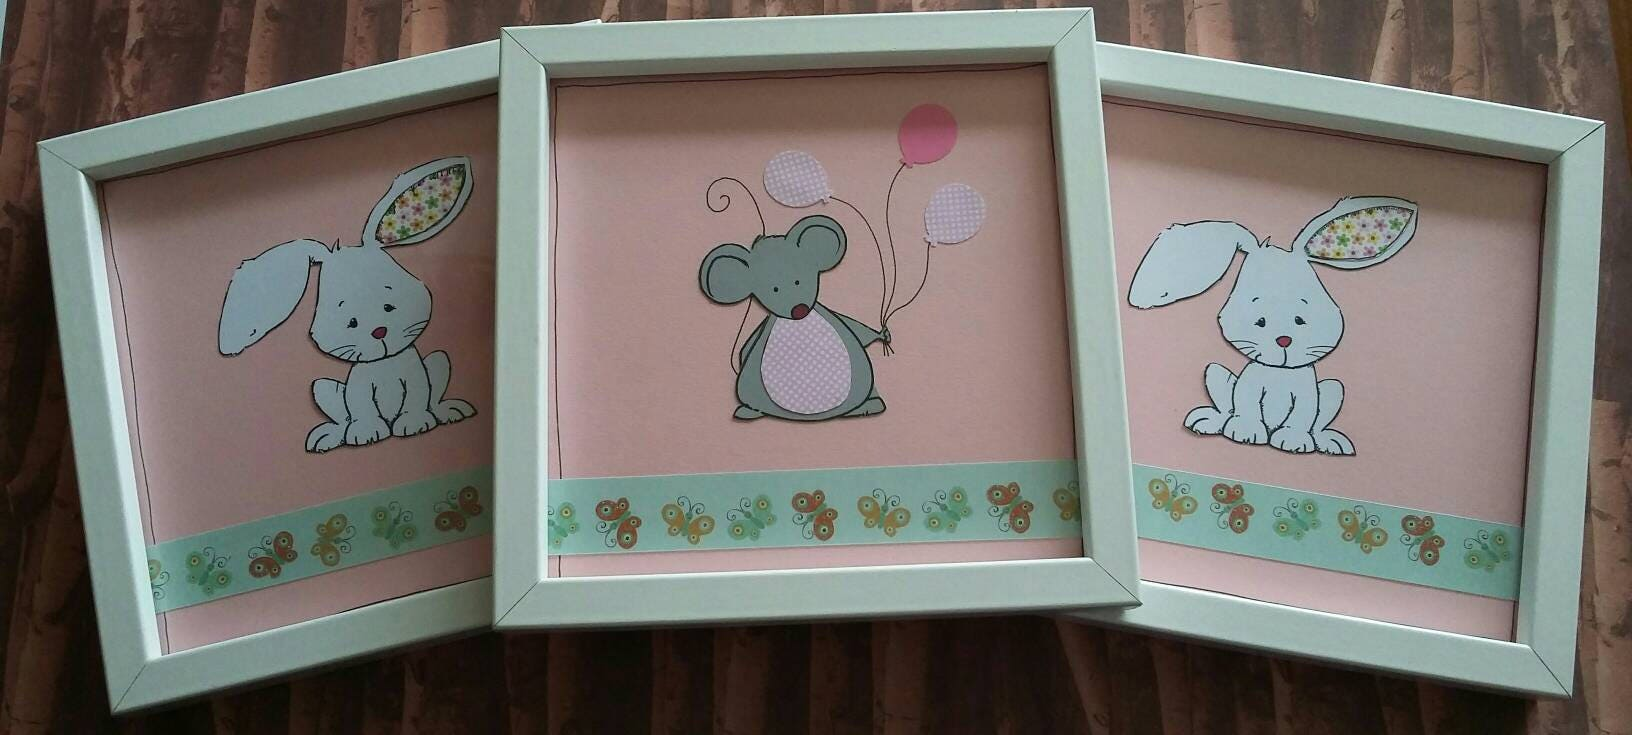 Nursery pictures picture frames  handmade new baby gift baby girlbabys room decorated frame mouse rabbits animal frames nursery